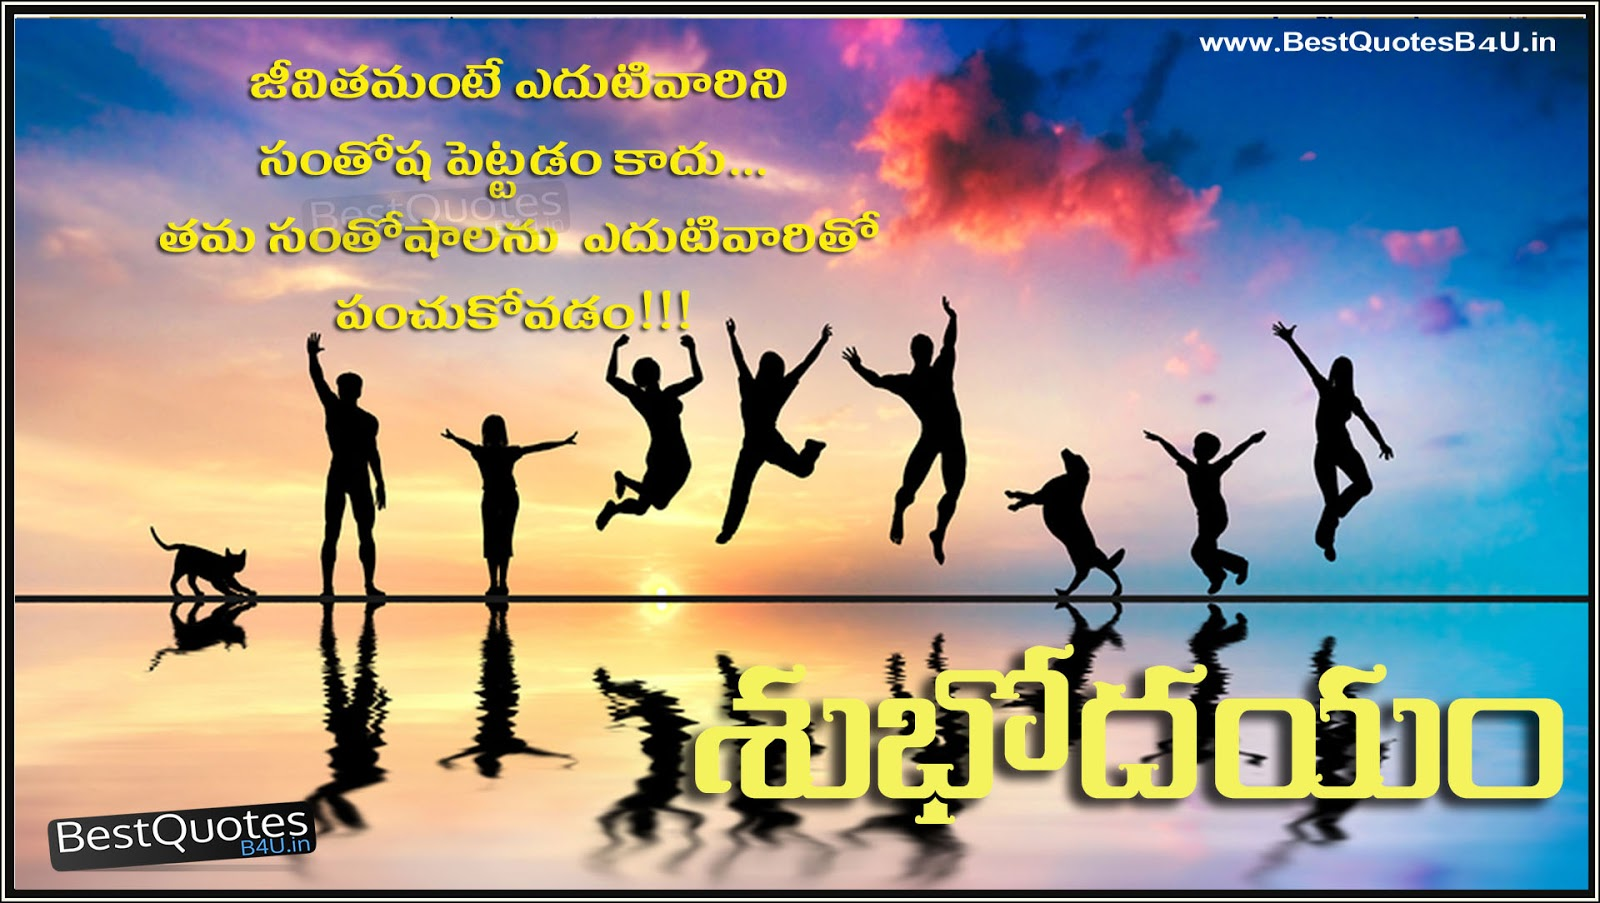 Telugu Good Morning Greetings With Making Others Happy Quotes Good